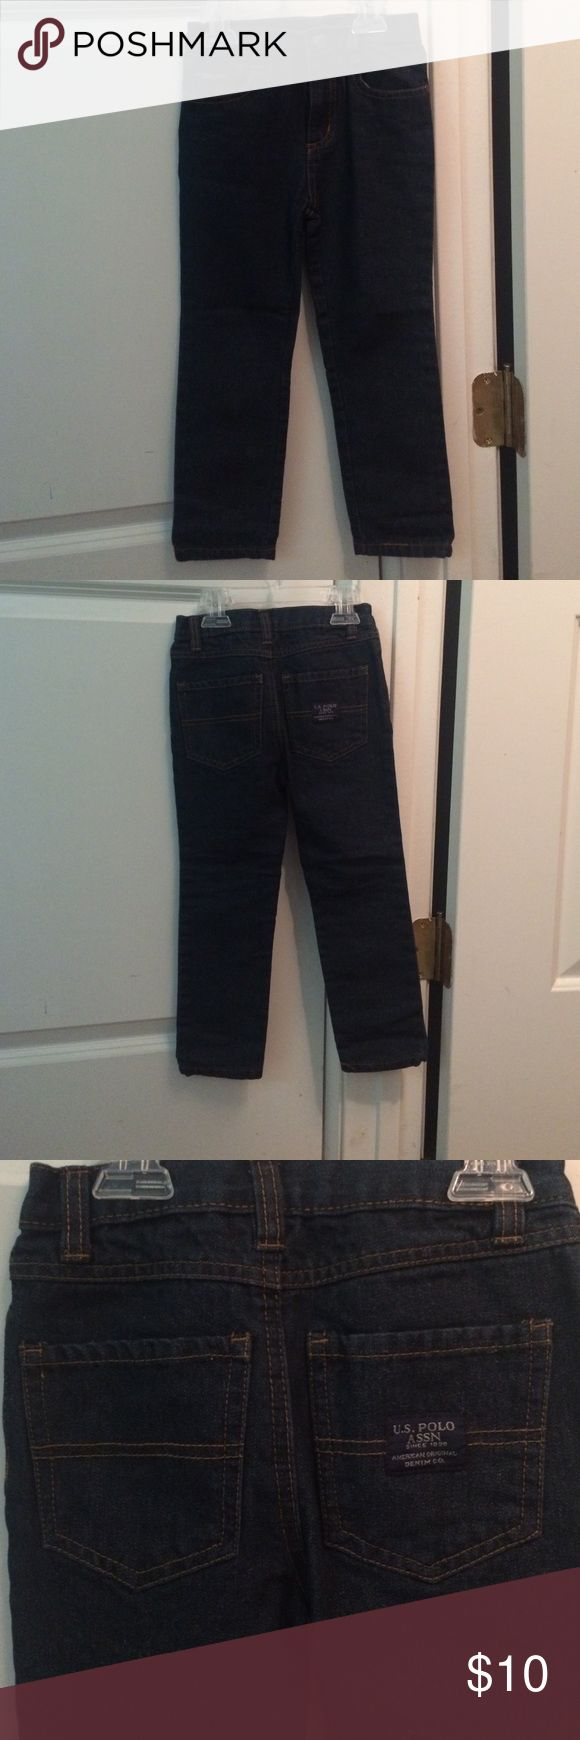 🌟LAST CHANCE🌟 U.S Polo Association Jeans Brand new without tags. My son tries them on and didn't like them. They are skinny jeans...very cute little boy jeans!! U.S. Polo Assn. Bottoms Jeans